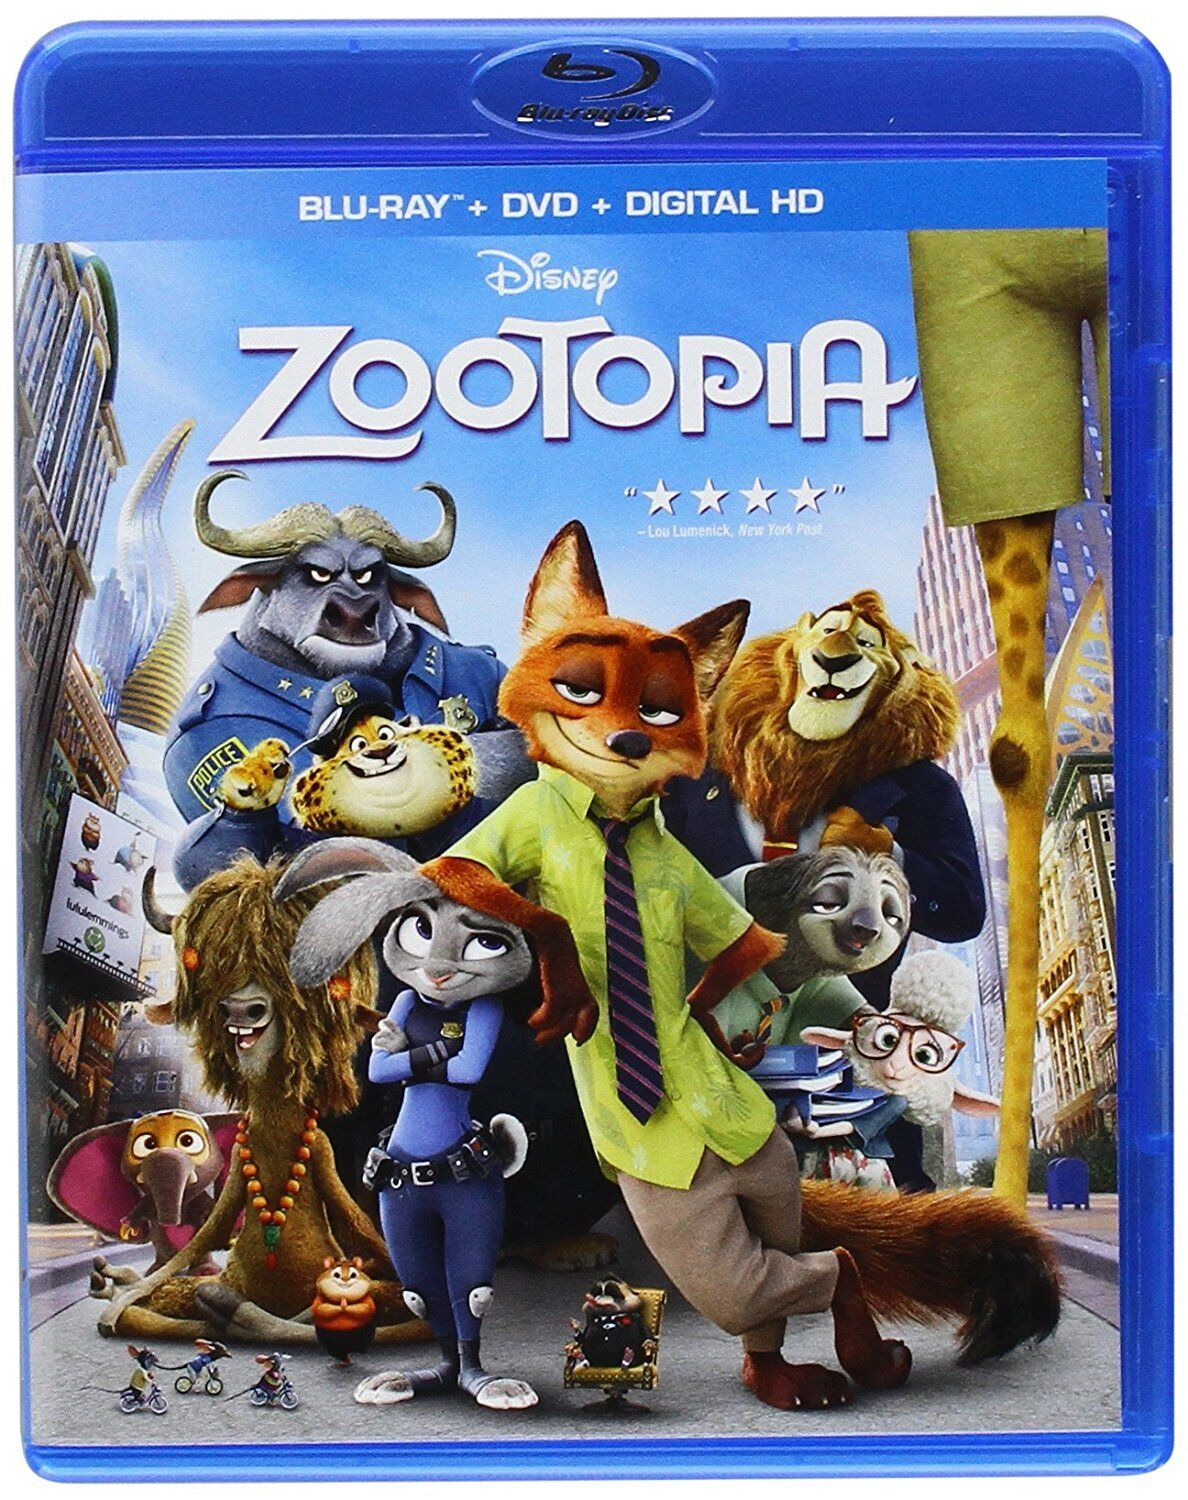 Disney's Zootopia  - NEW